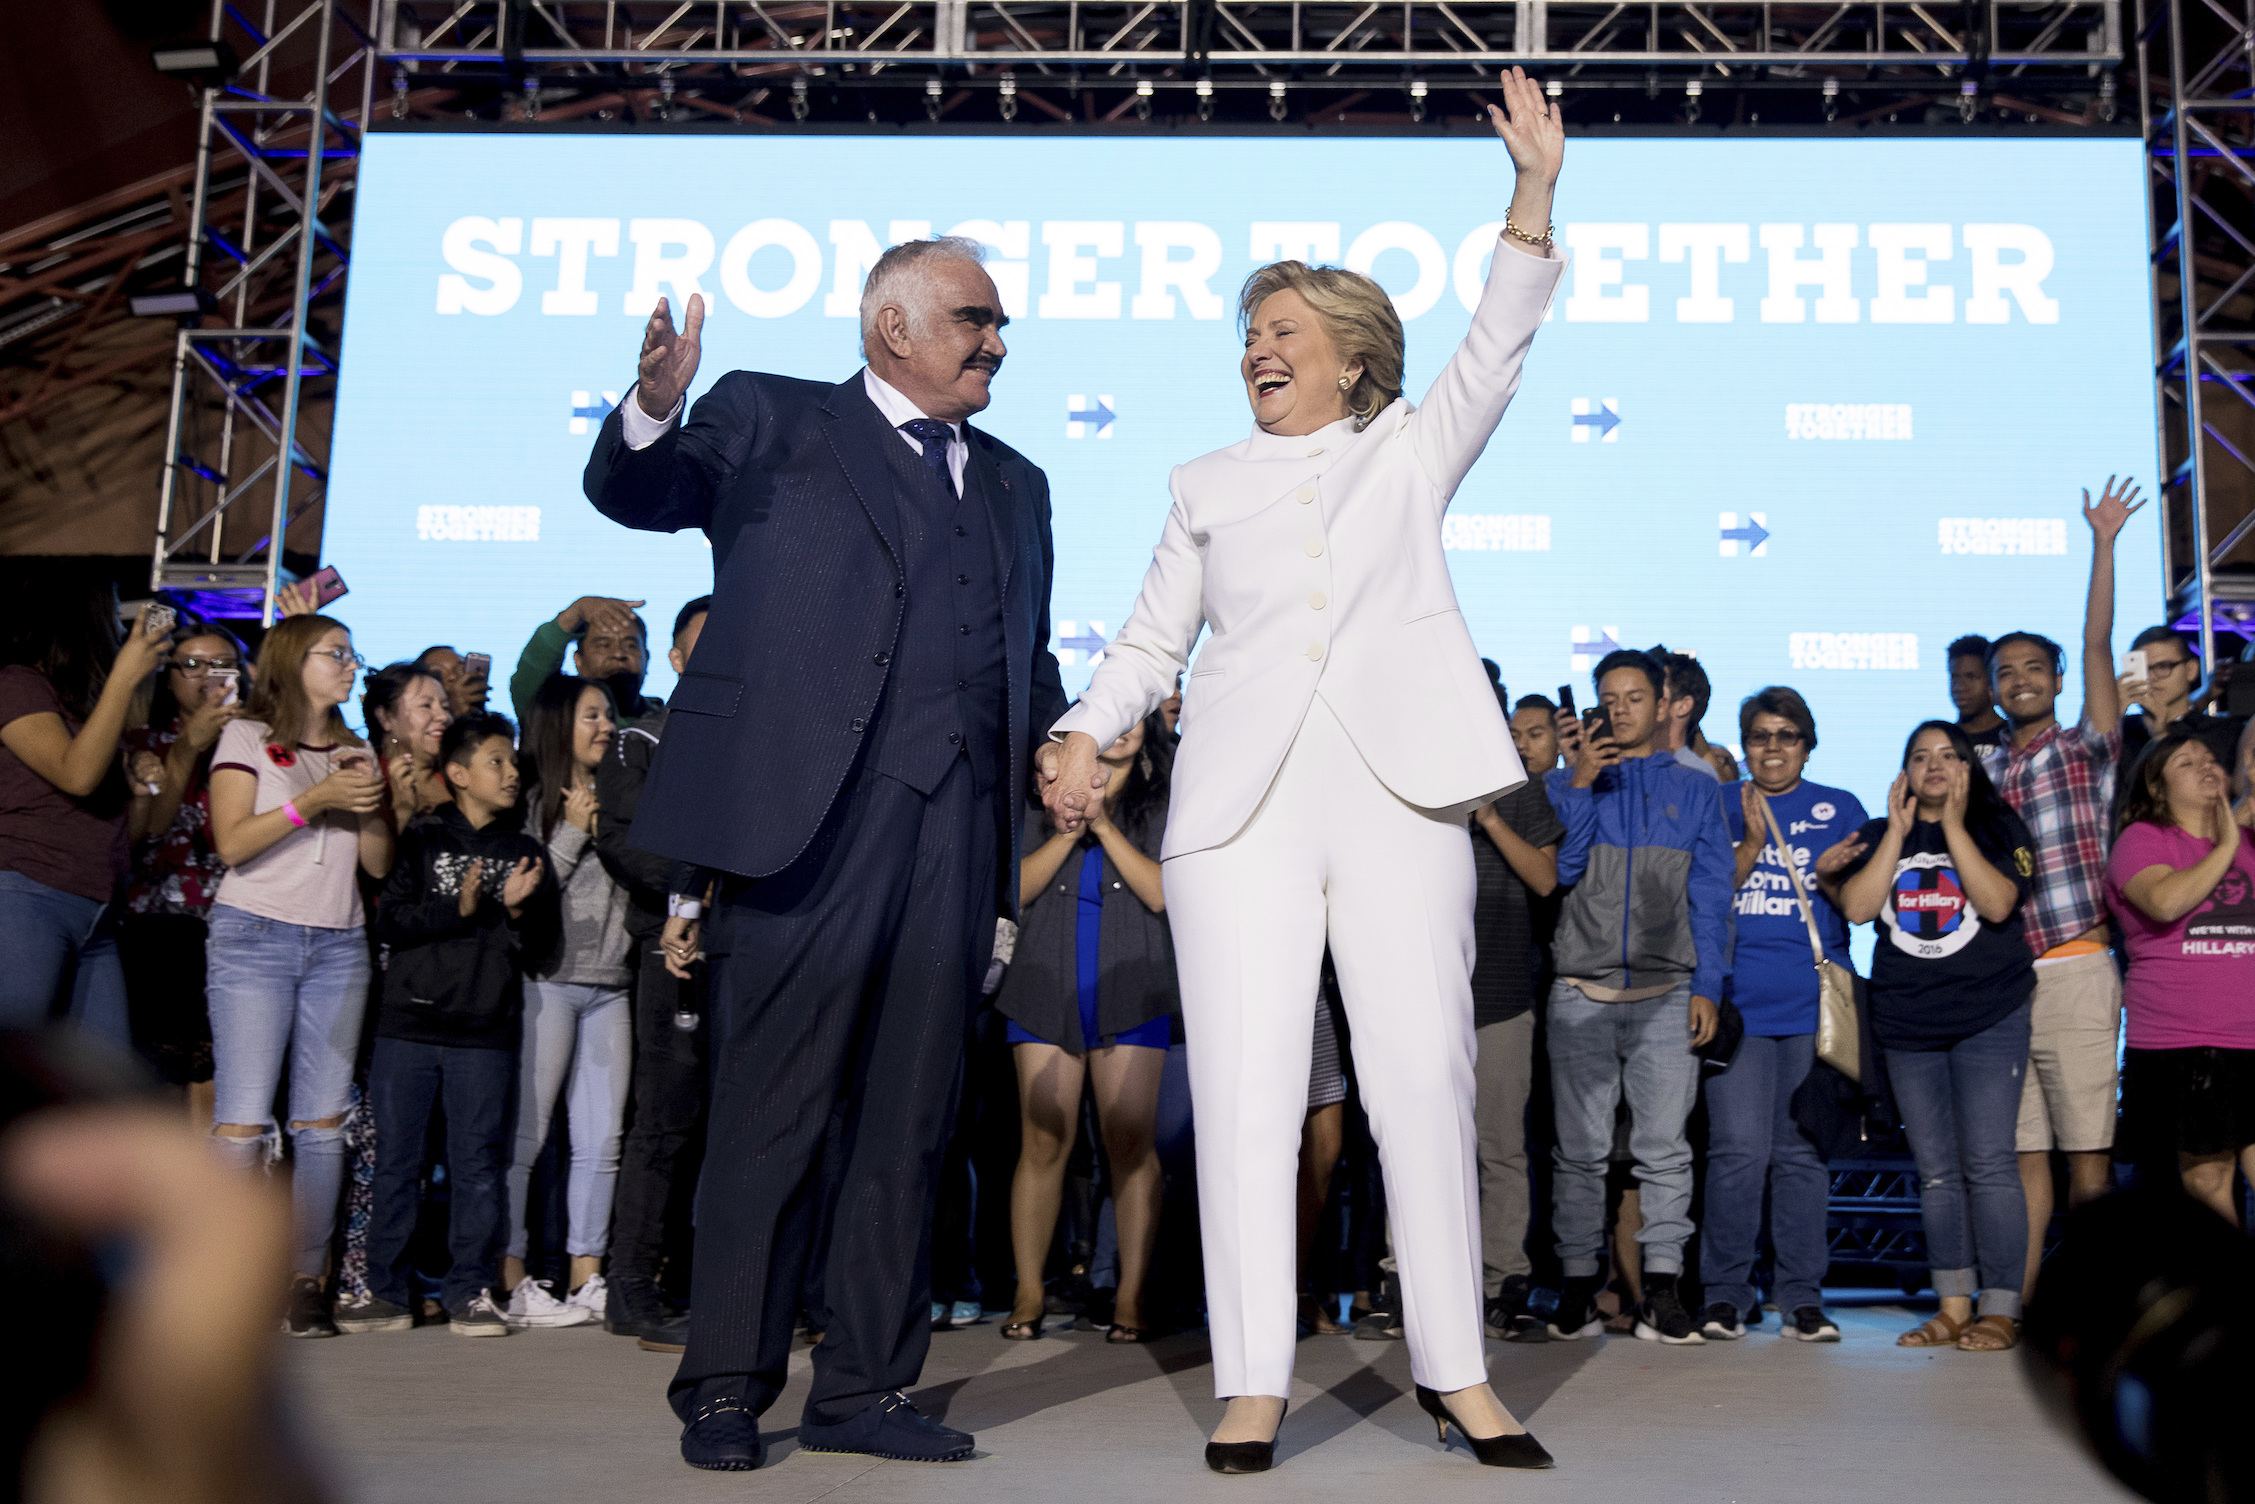 Democratic presidential candidate Hillary Clinton, right, and singer Vicente Fernandez, left, stand on stage together at debate watch party at the Craig Ranch Regional Amphitheater in North Las Vegas, Wednesday, Oct. 19, 2016, following the third presidential debate. (AP Photo/Andrew Harnik)